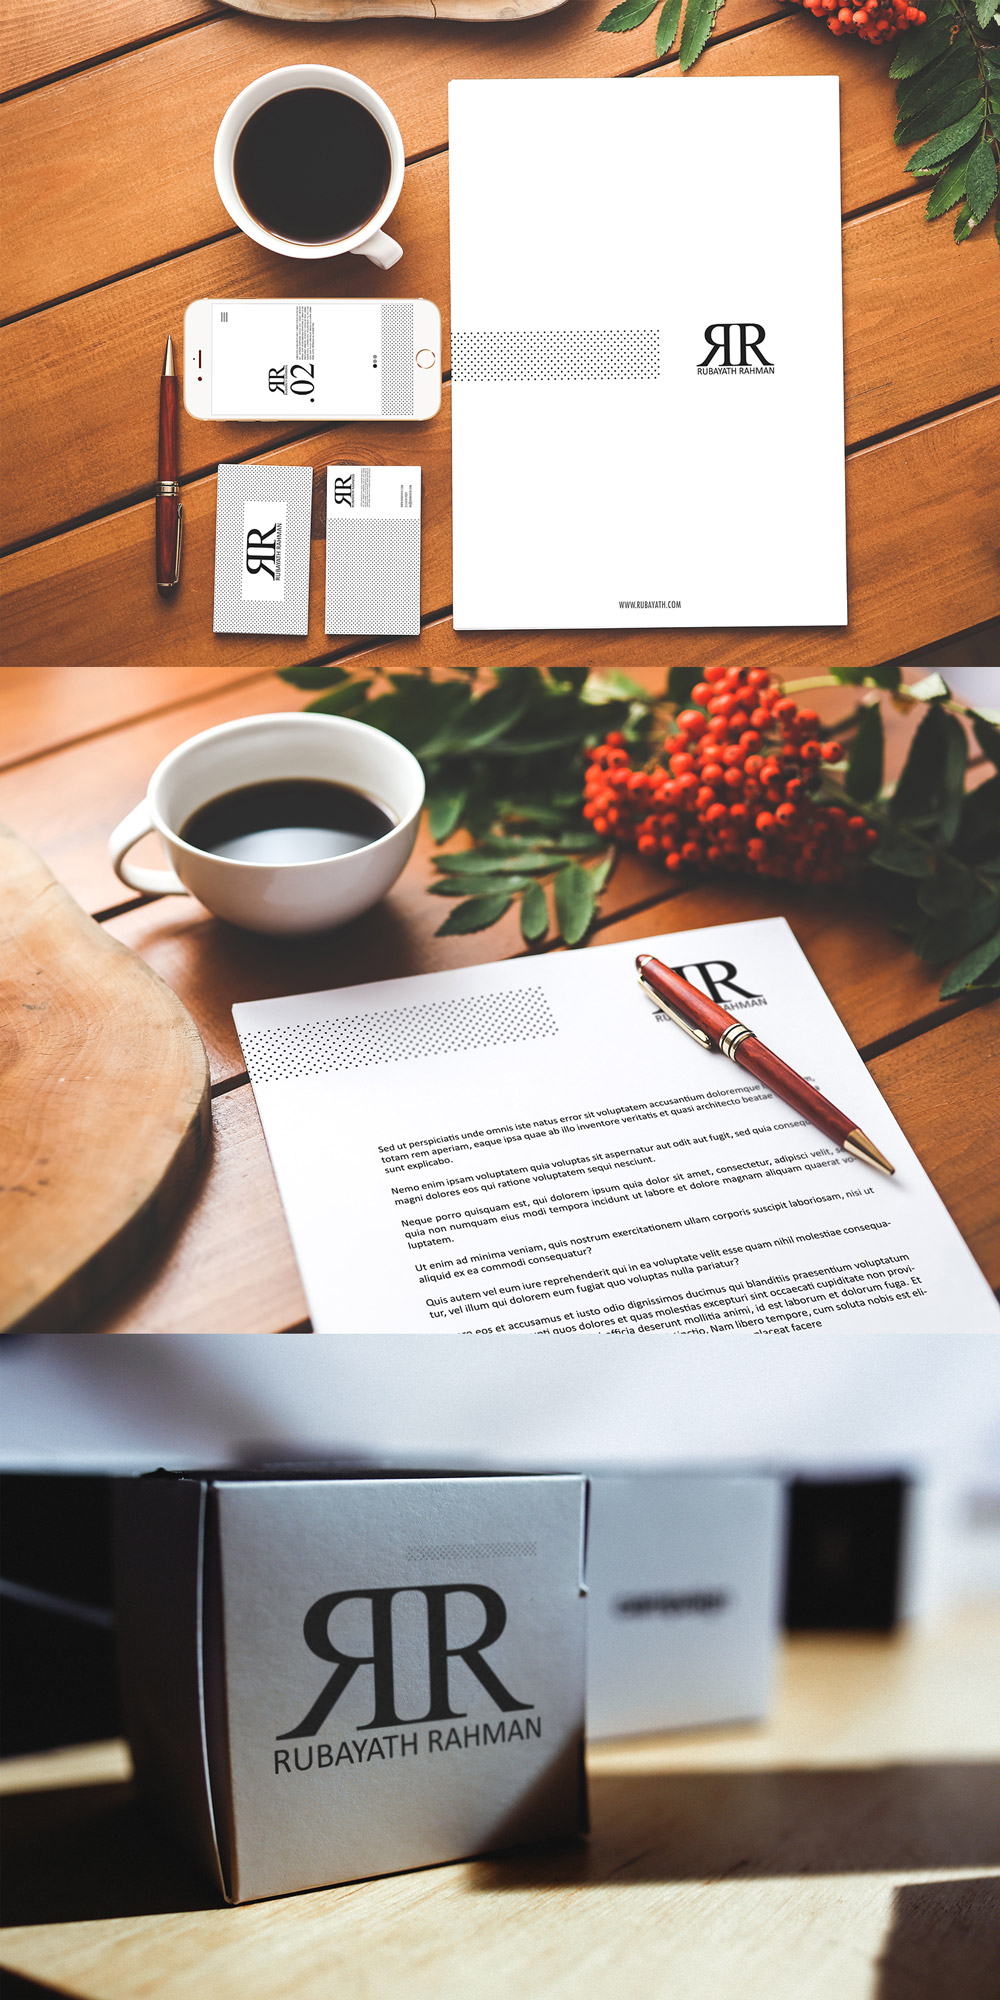 http://www.graphicsfuel.com/wp-content/uploads/2015/06/branding-identity-mockup.jpg